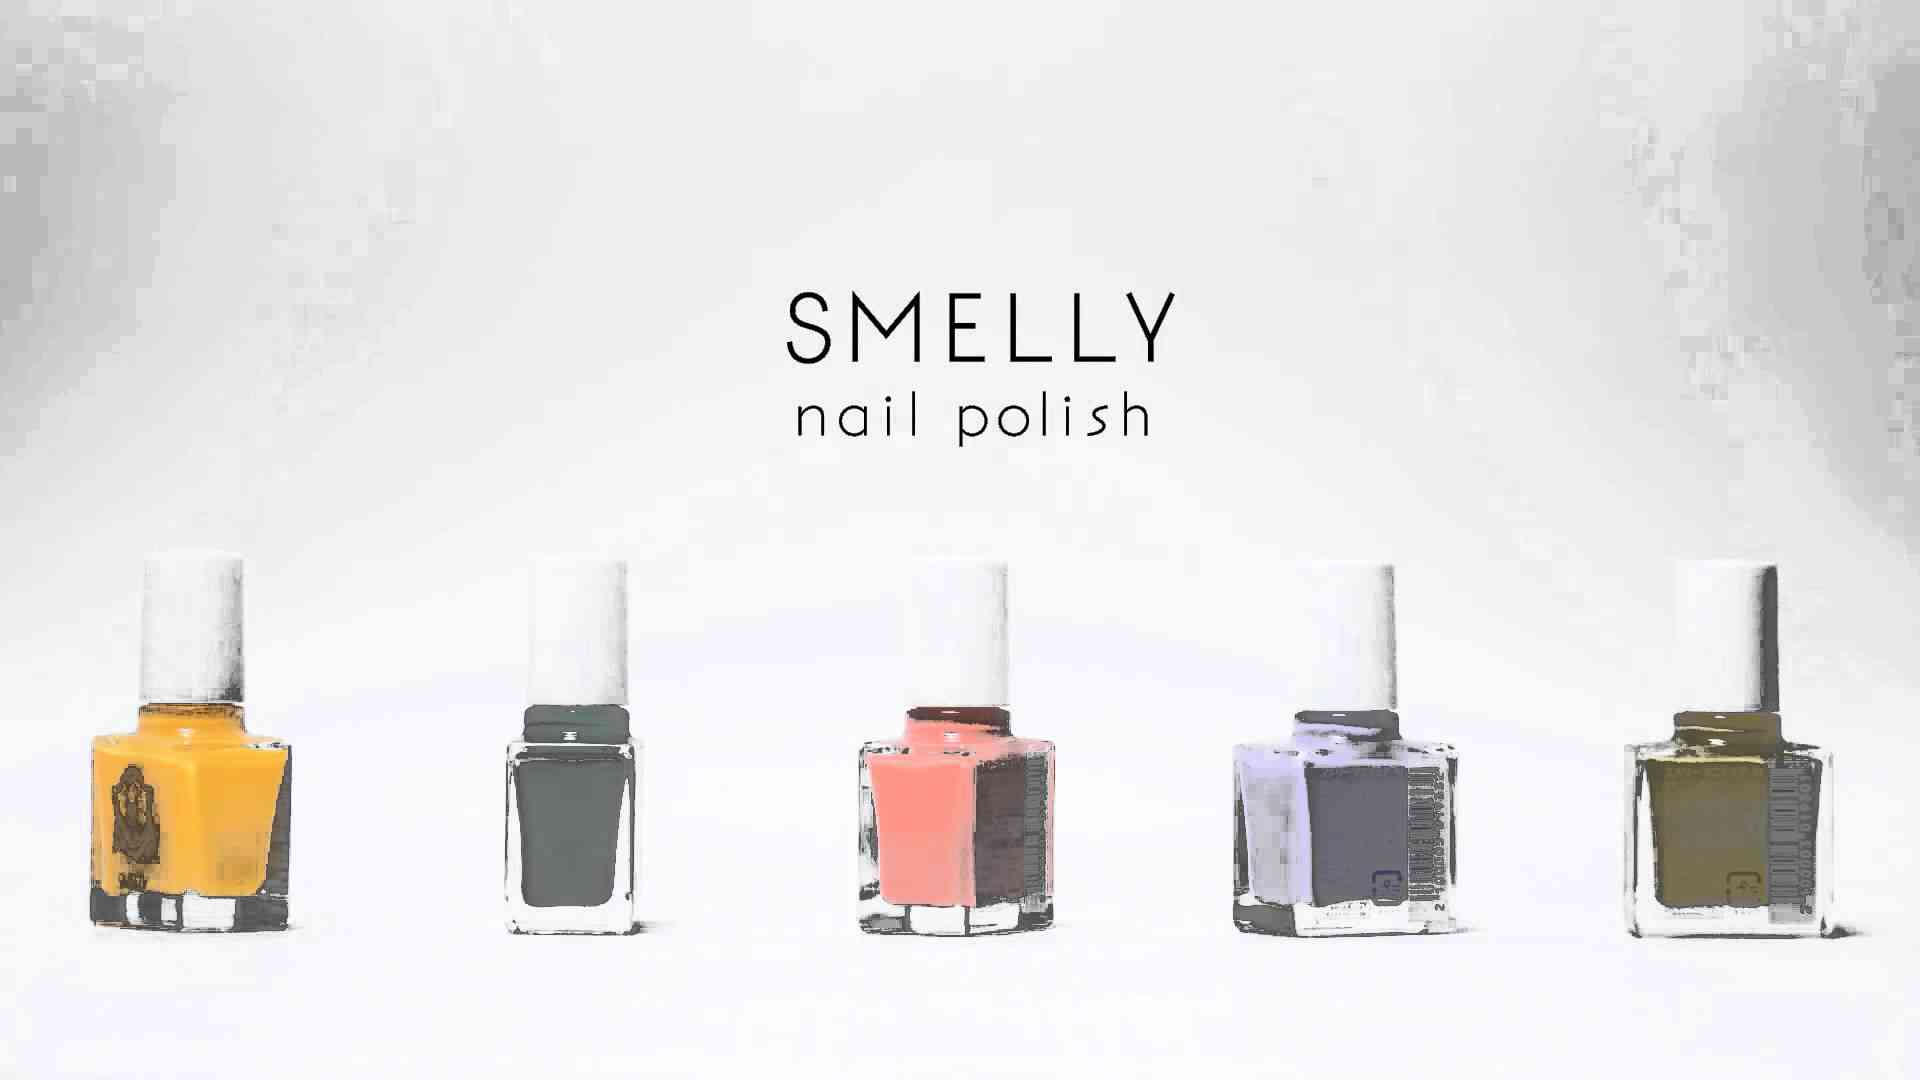 SMELLY nail polish - YouTube